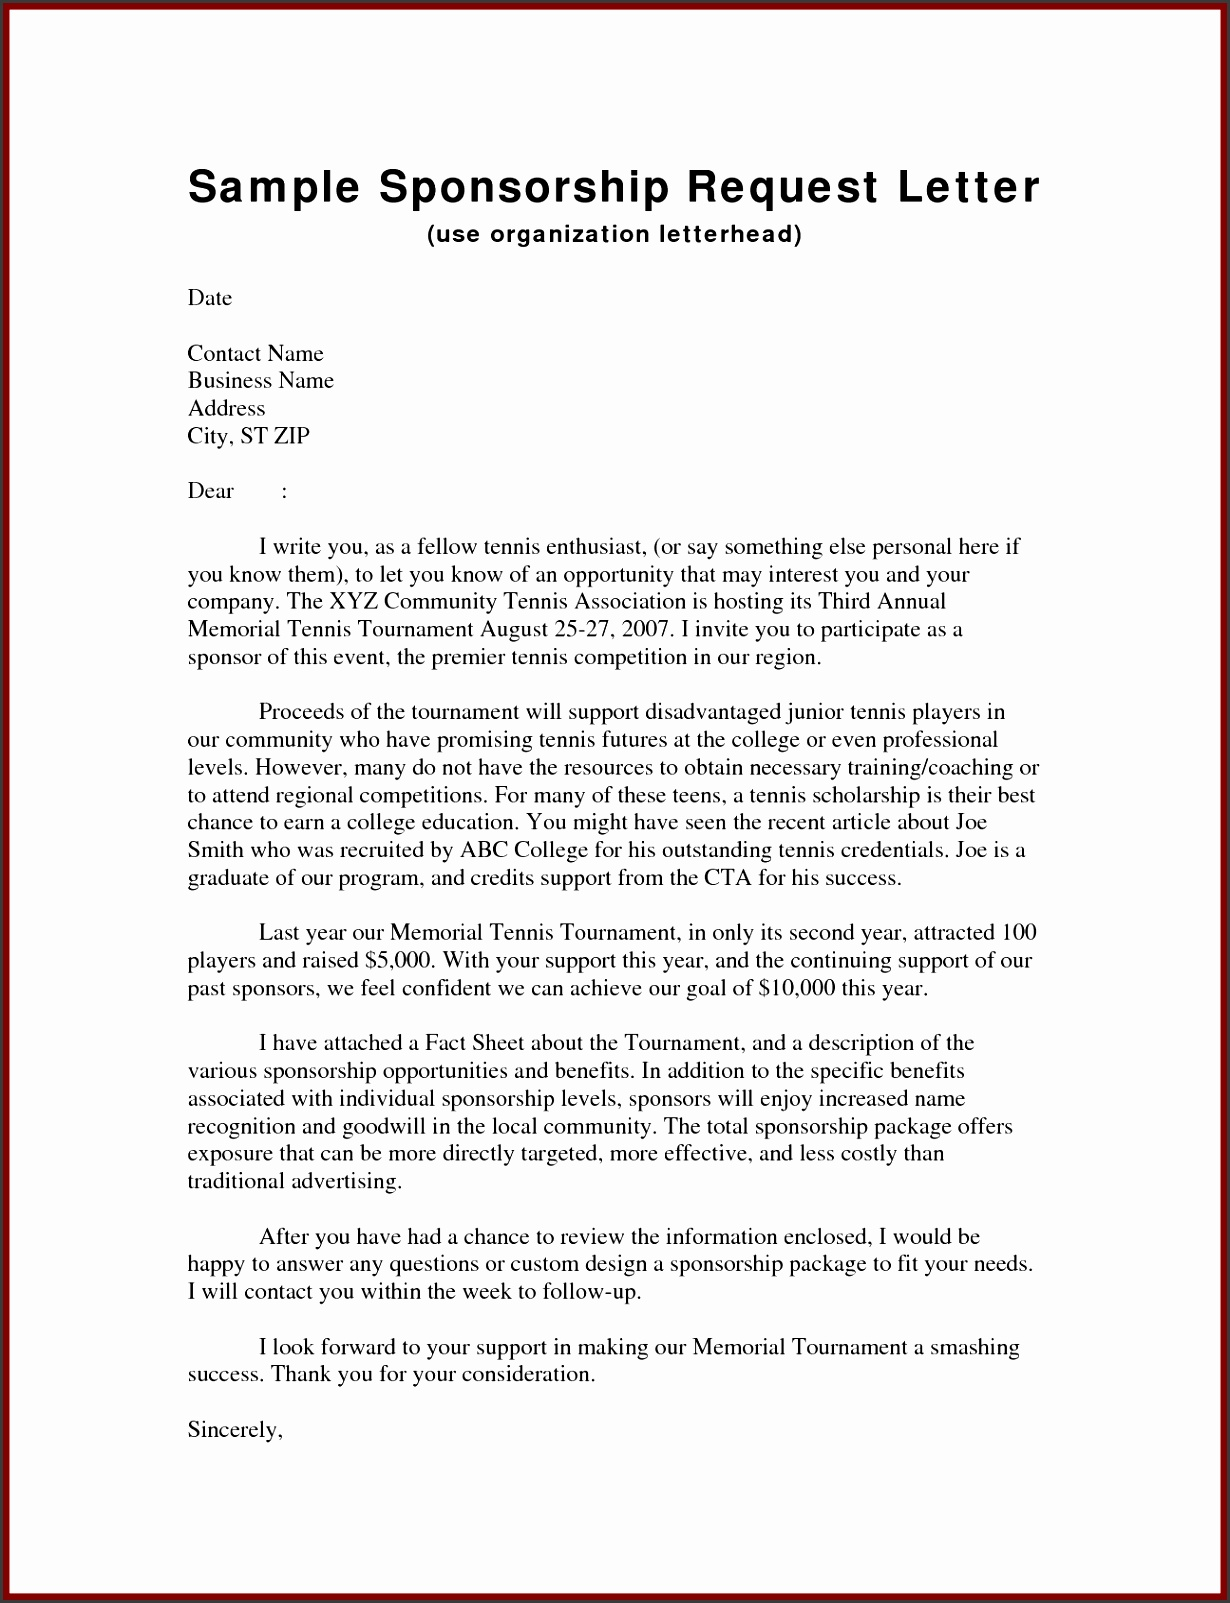 Event Sponsorship Request Letter Template by hcu